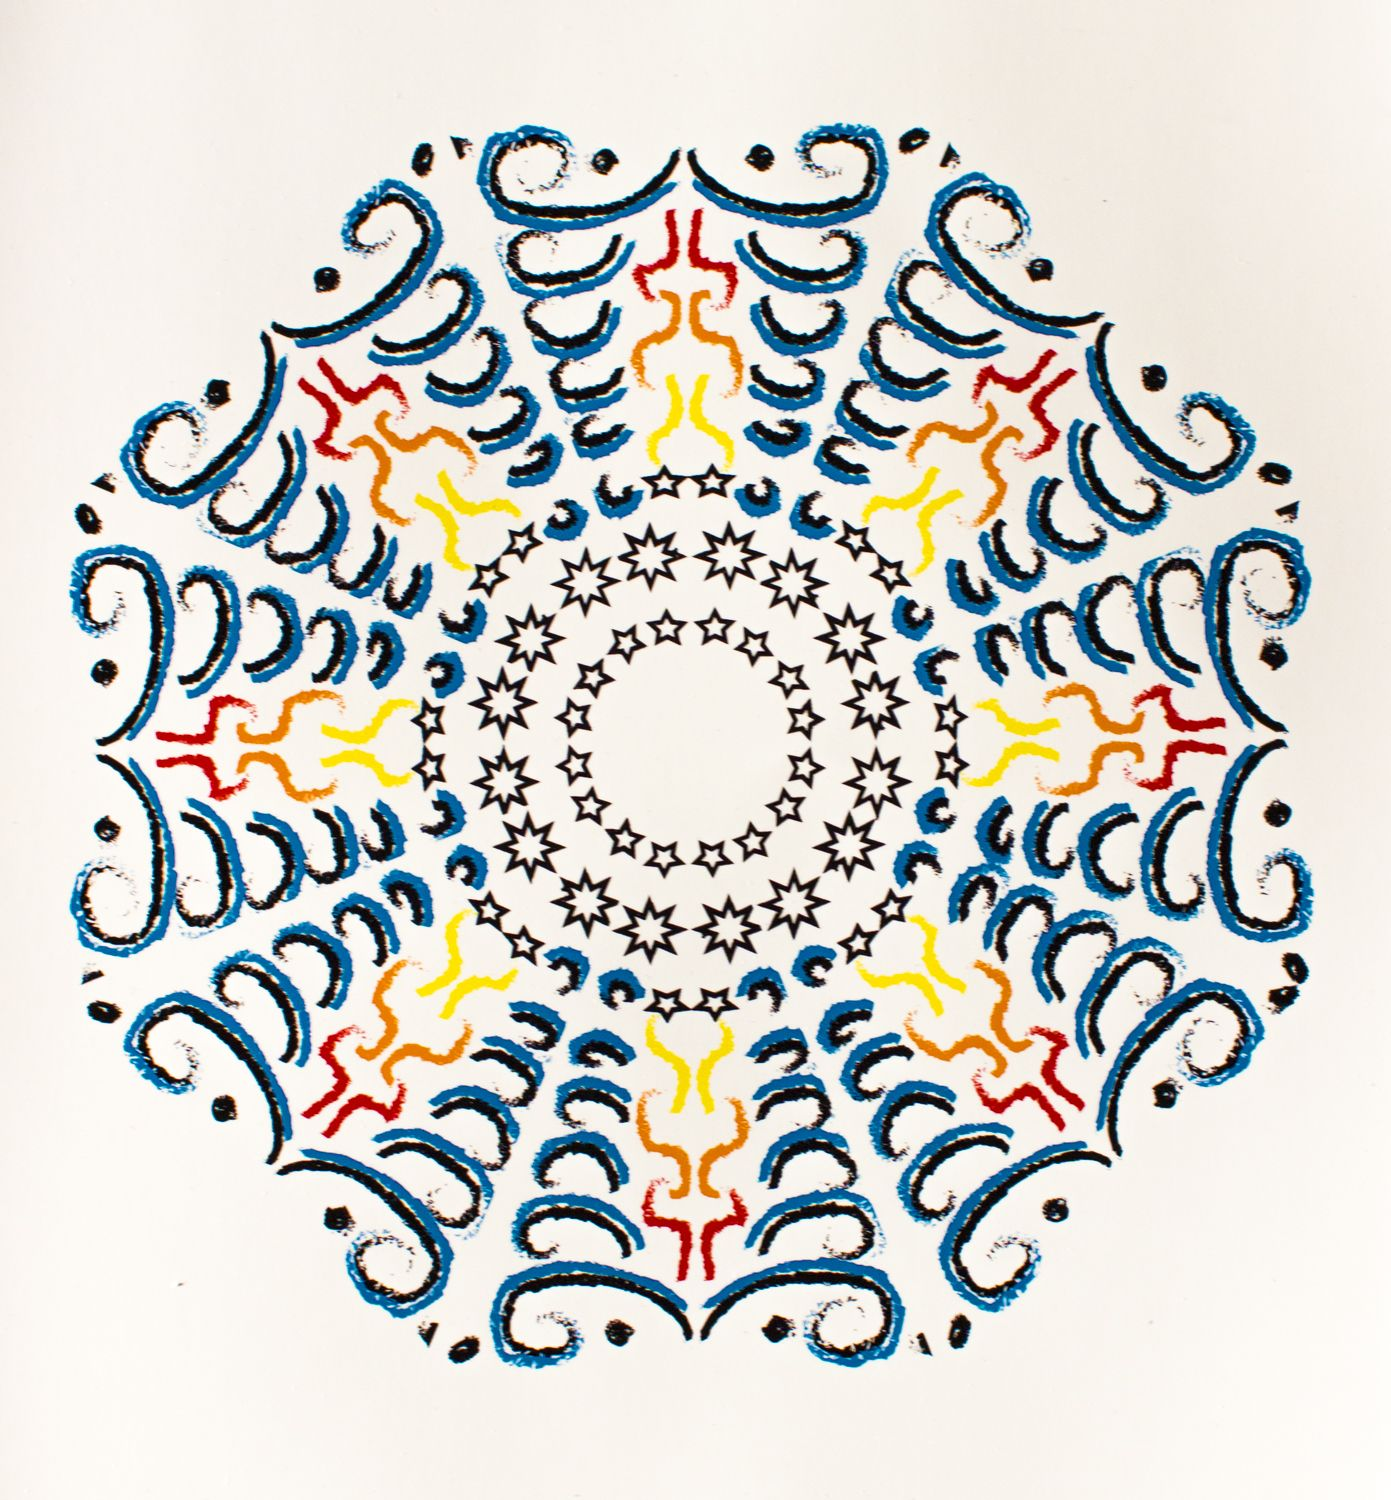 Mandala pattern created by Livvy Frazier